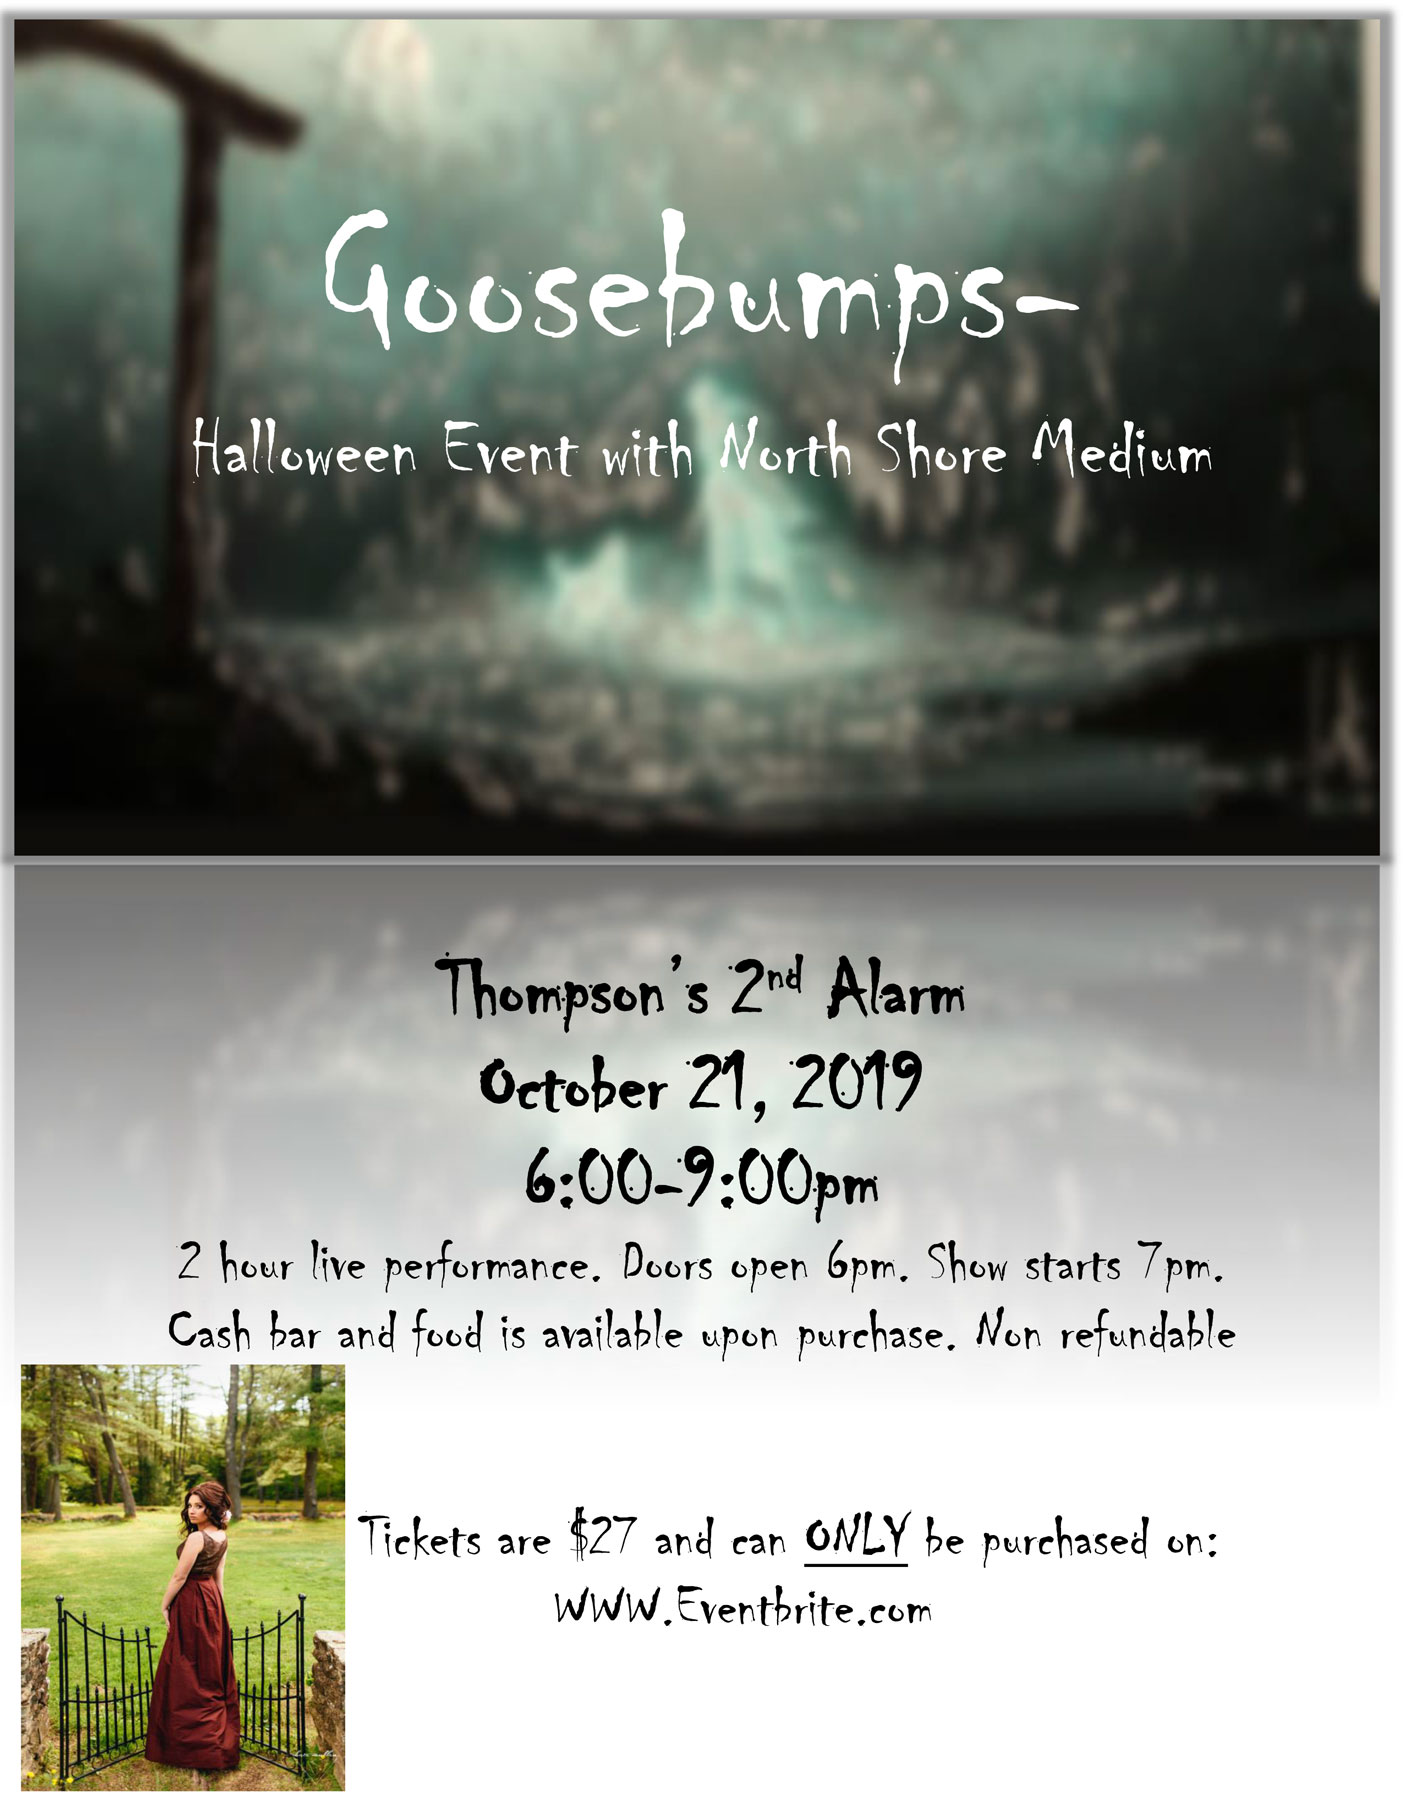 Goosebumps- Halloween Event with North Shore Medium